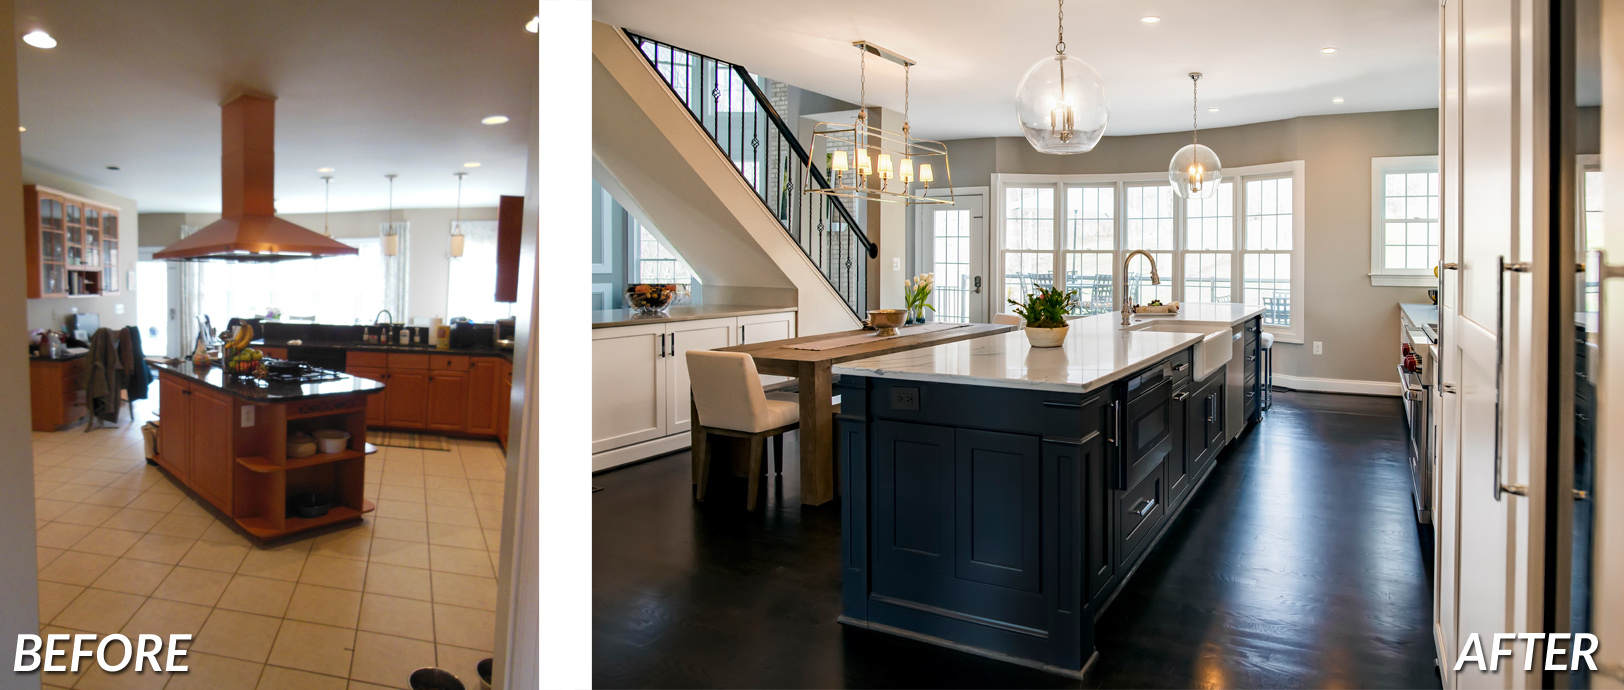 BOWA Design Build - Leesburg Kitchen Renovation Before & After